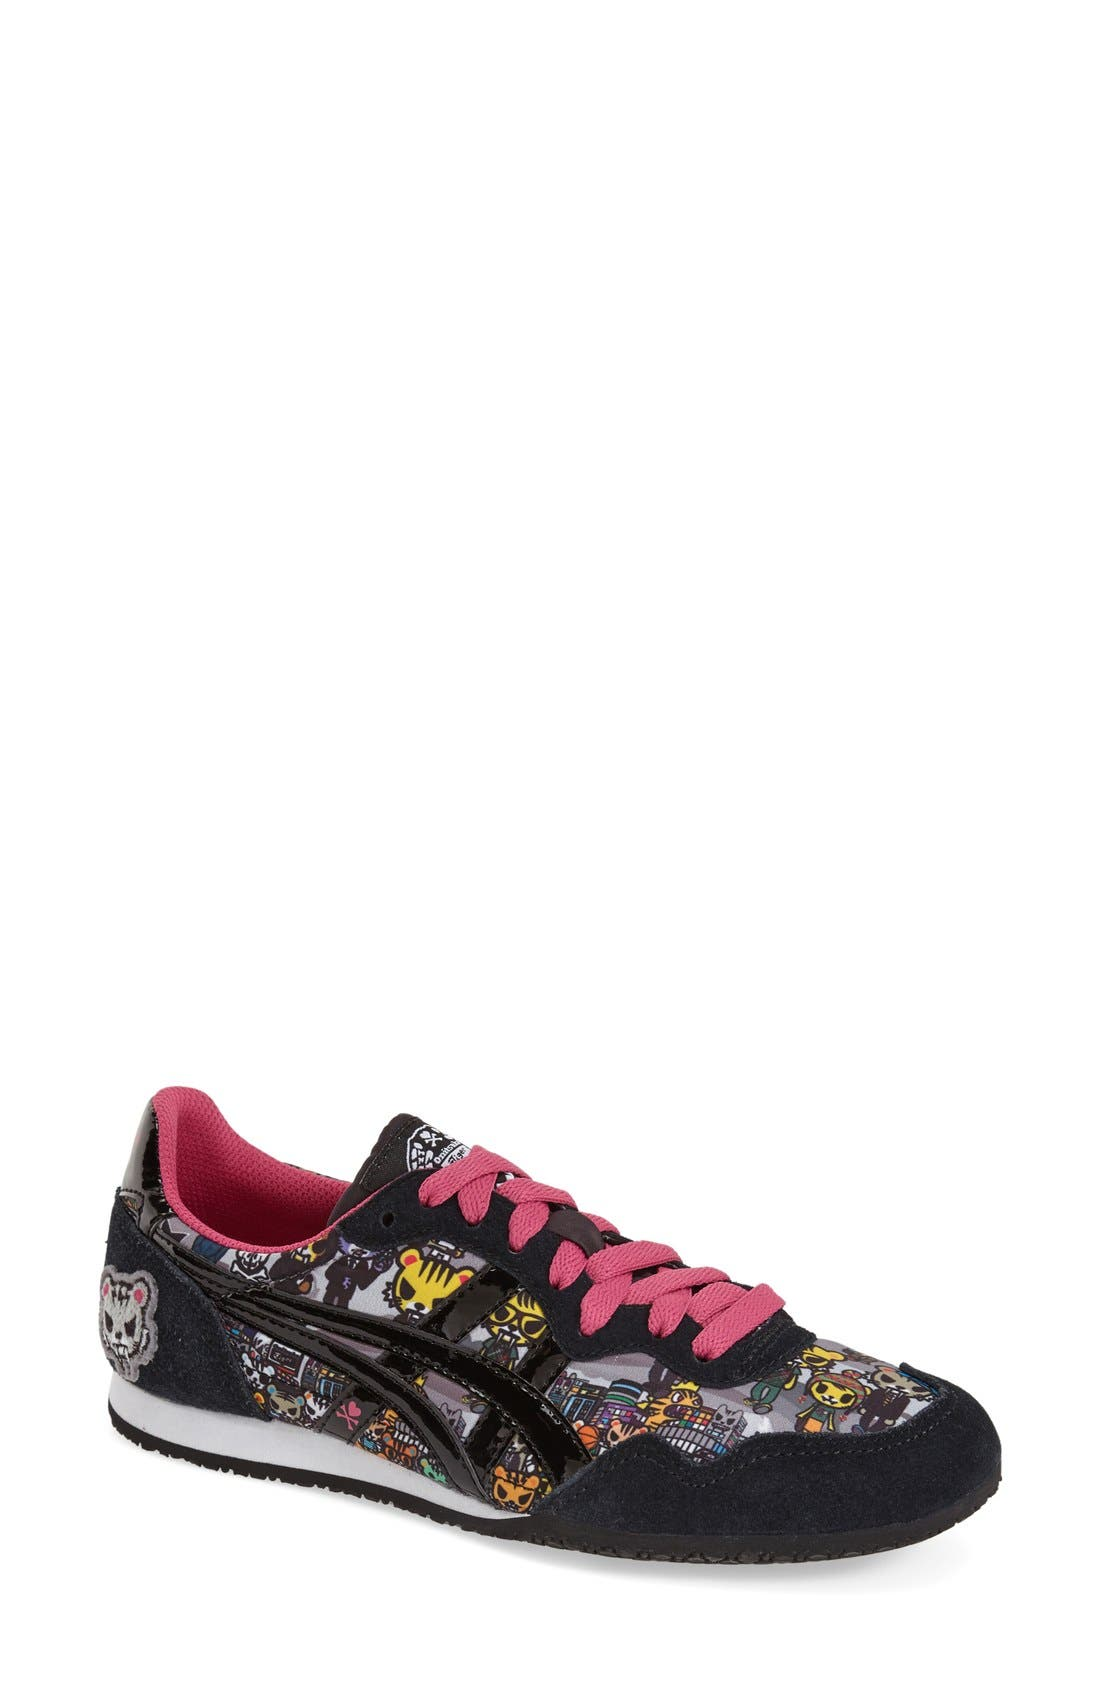 Alternate Image 1 Selected - Onitsuka Tiger™ 'Serrano' Sneaker (Women)